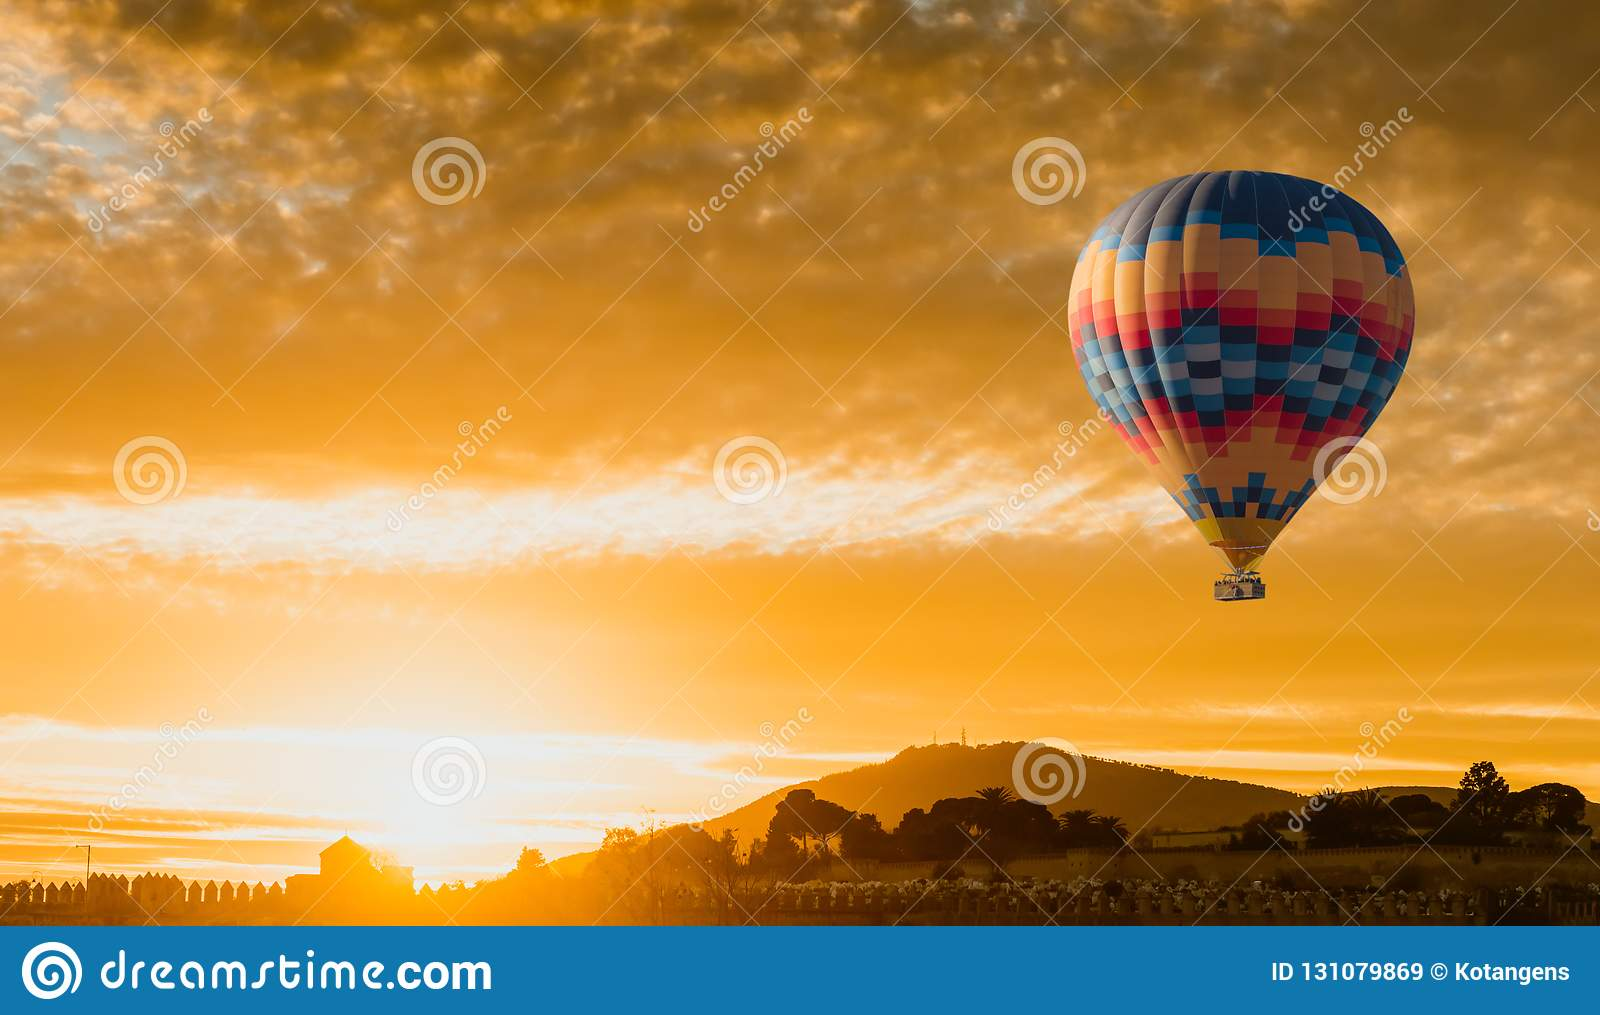 Vol chaud de ballon à air au lever de soleil jaune